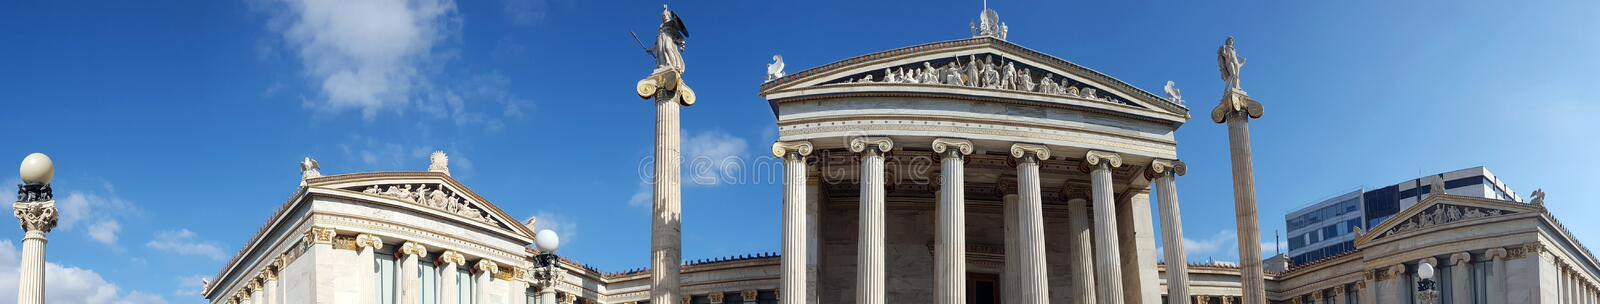 Panoramic view of the Academy of Athens and the National Library, Greece royalty free stock photos